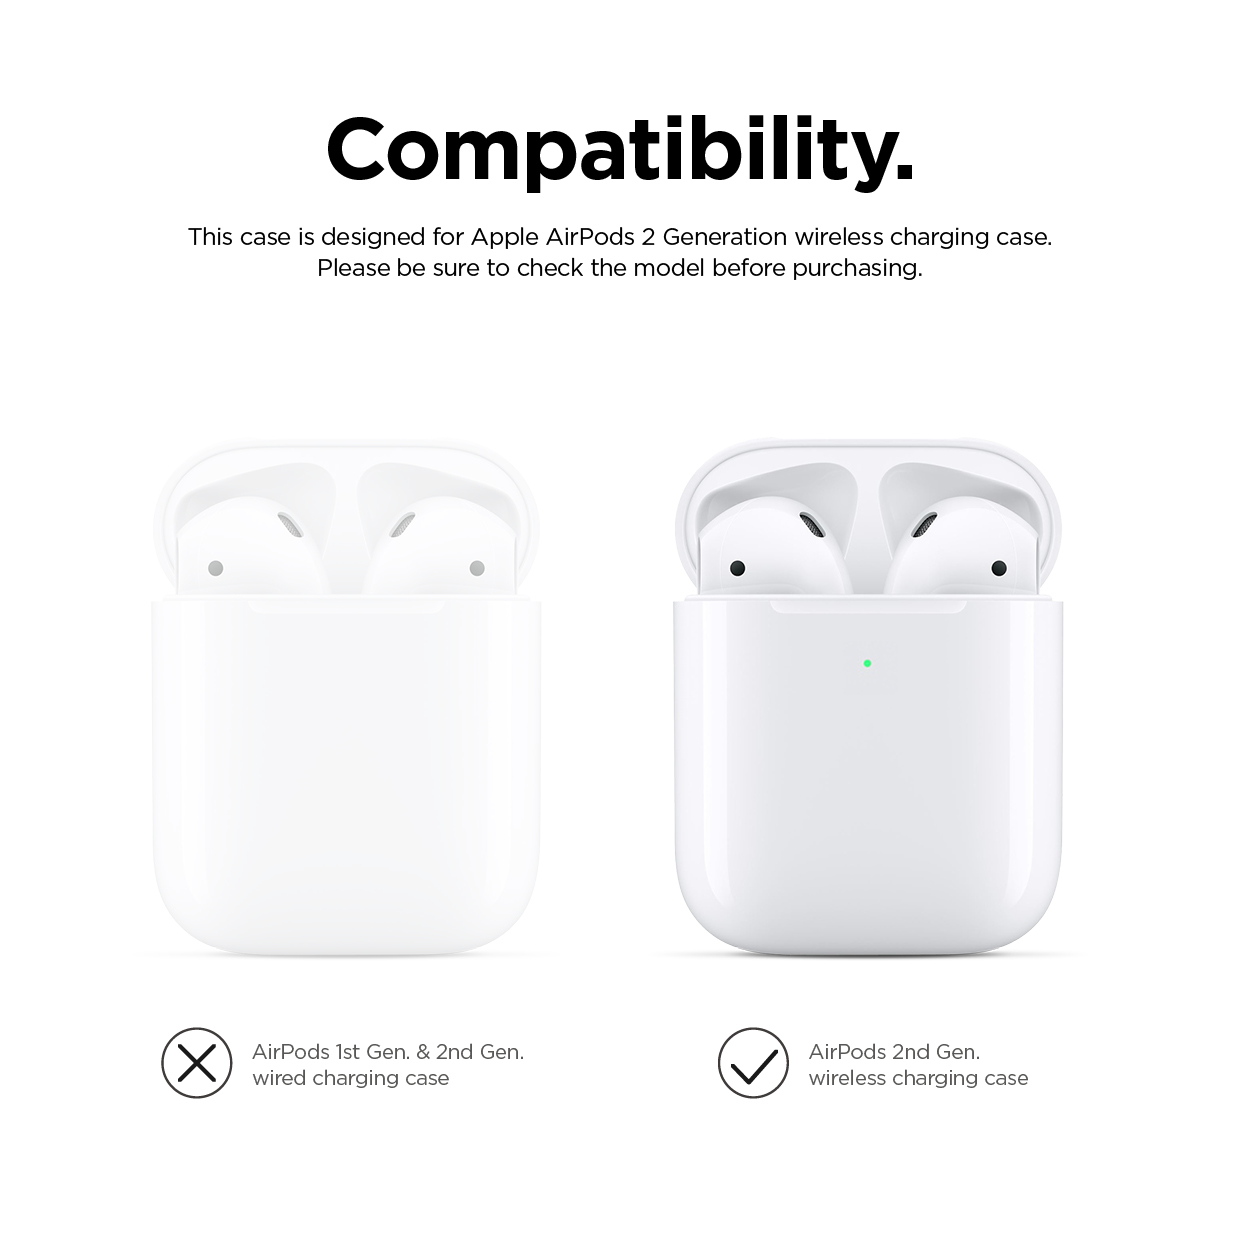 airpods 2nd gen case